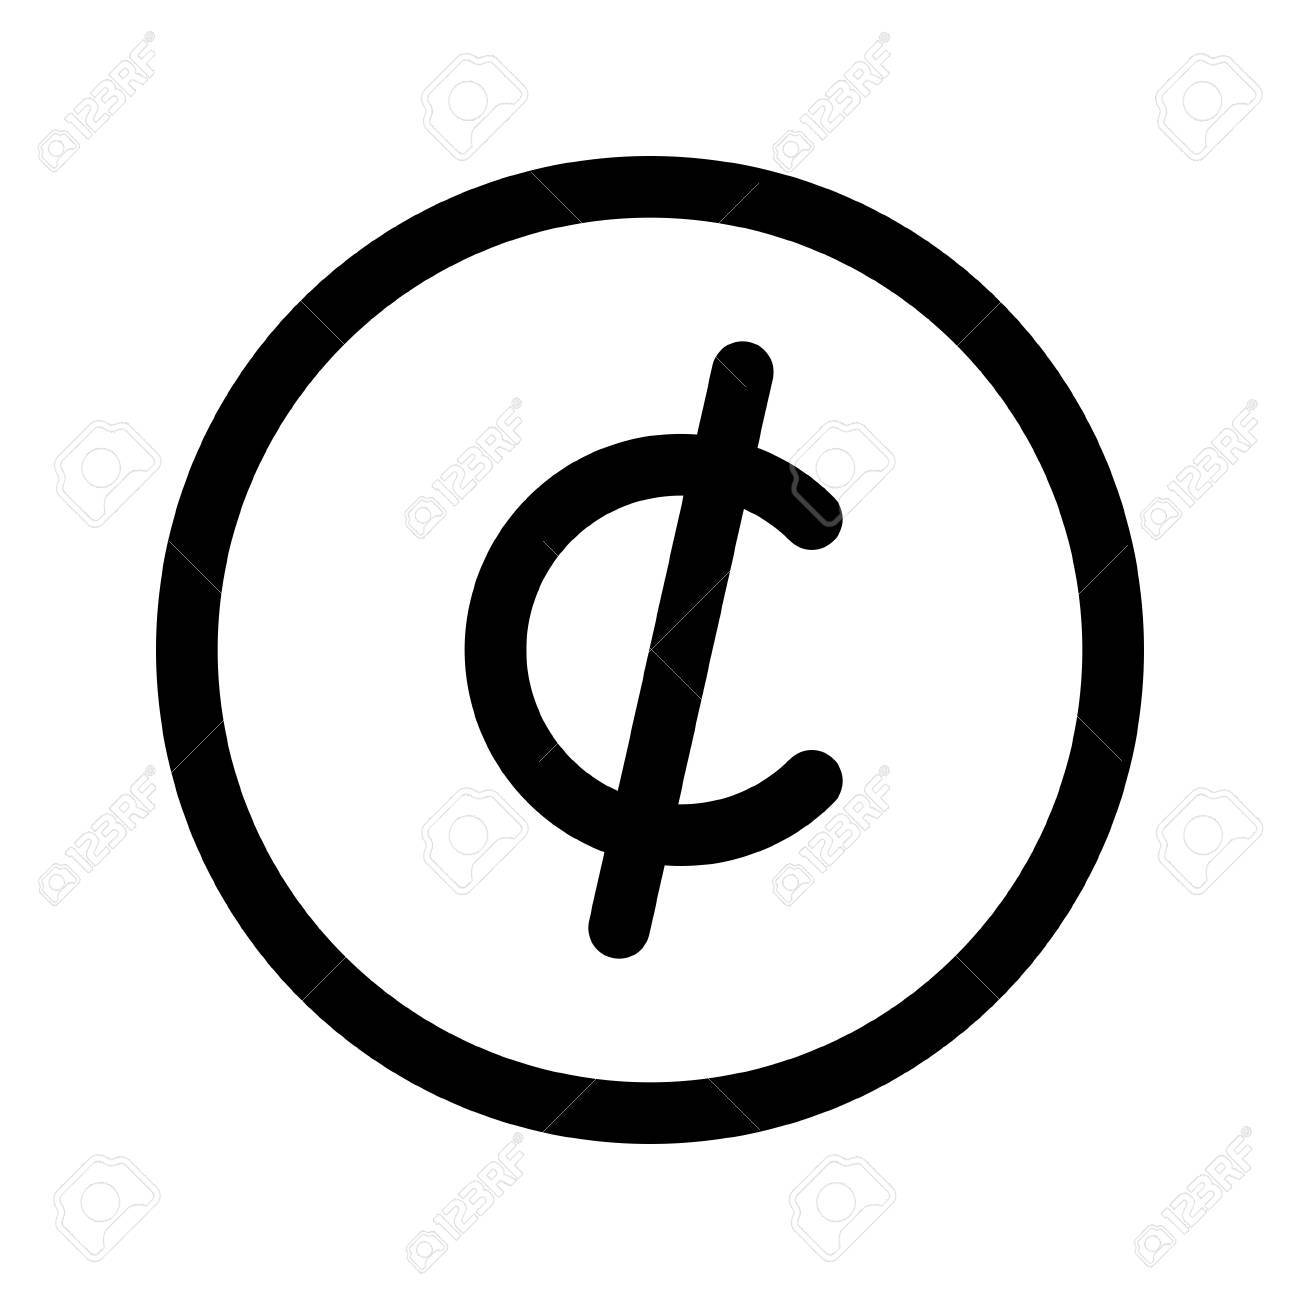 Cent symbol gallery symbol and sign ideas cent symbol royalty free cliparts vectors and stock illustration cent symbol stock vector 86682971 buycottarizona buycottarizona